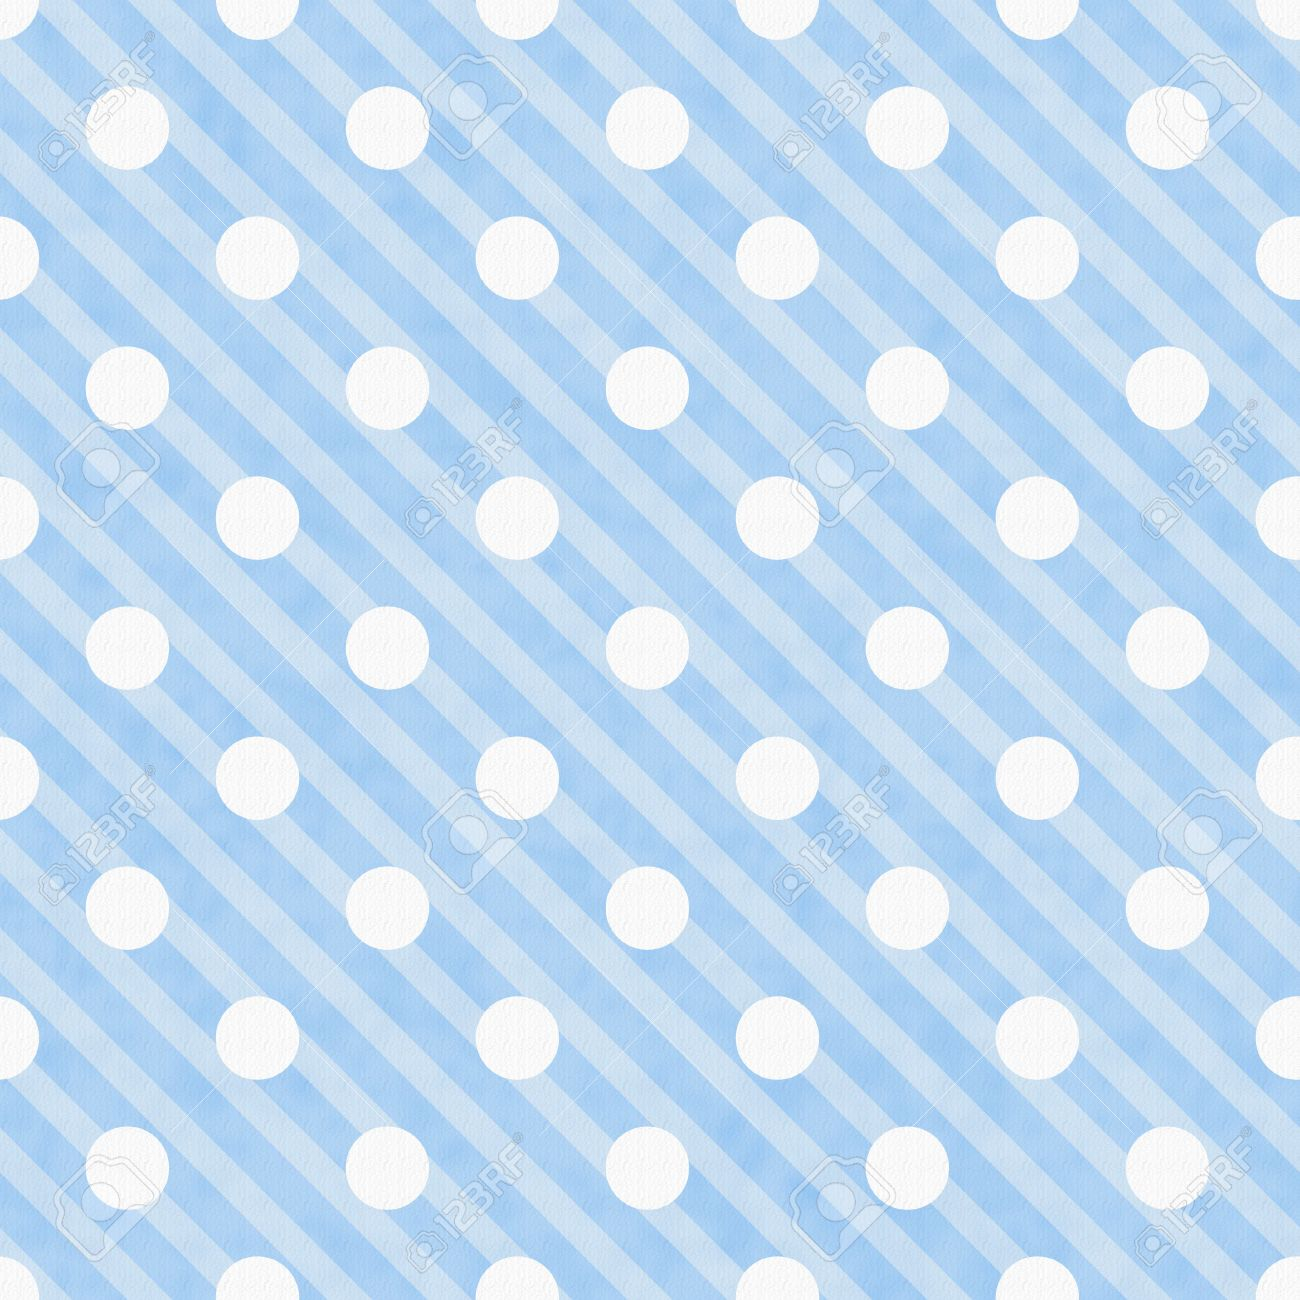 Blue And White Polka Dot Fabric Background That Is Seamless ...